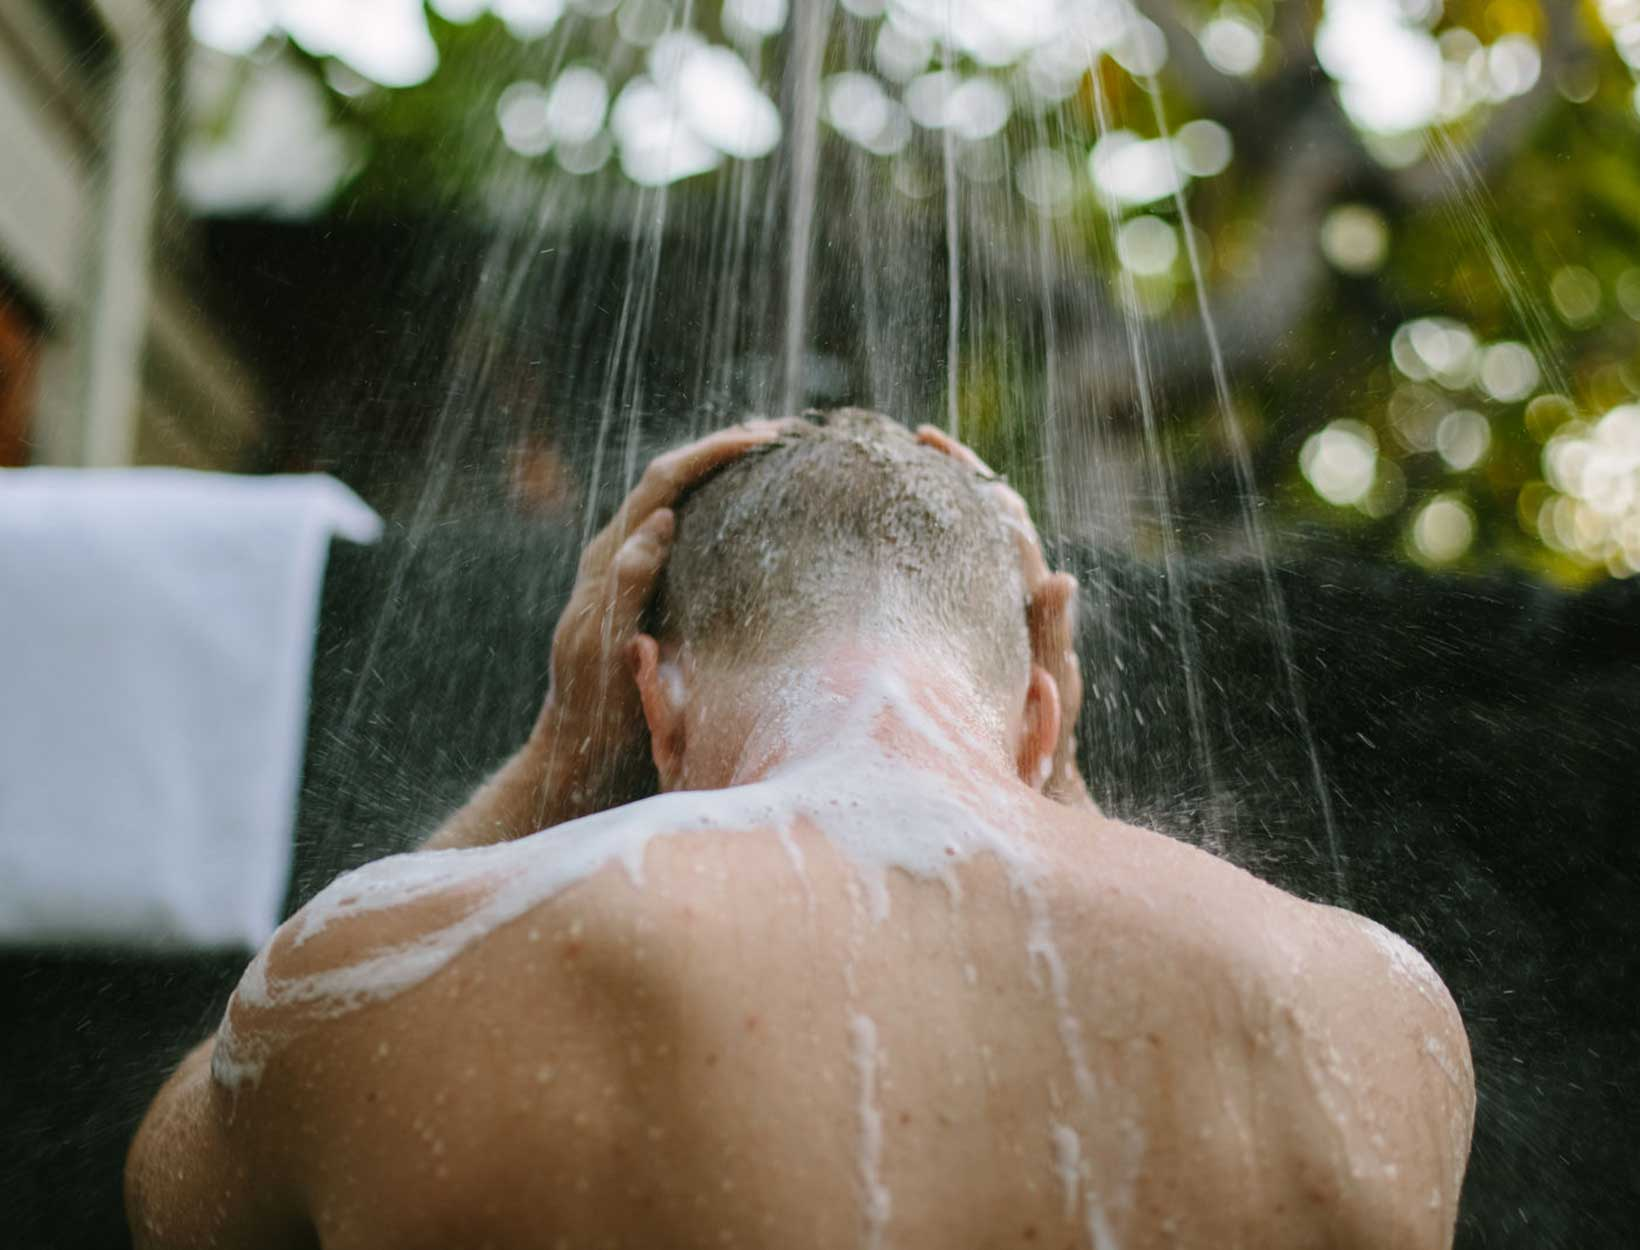 The goop Shower Makeover (for Men)